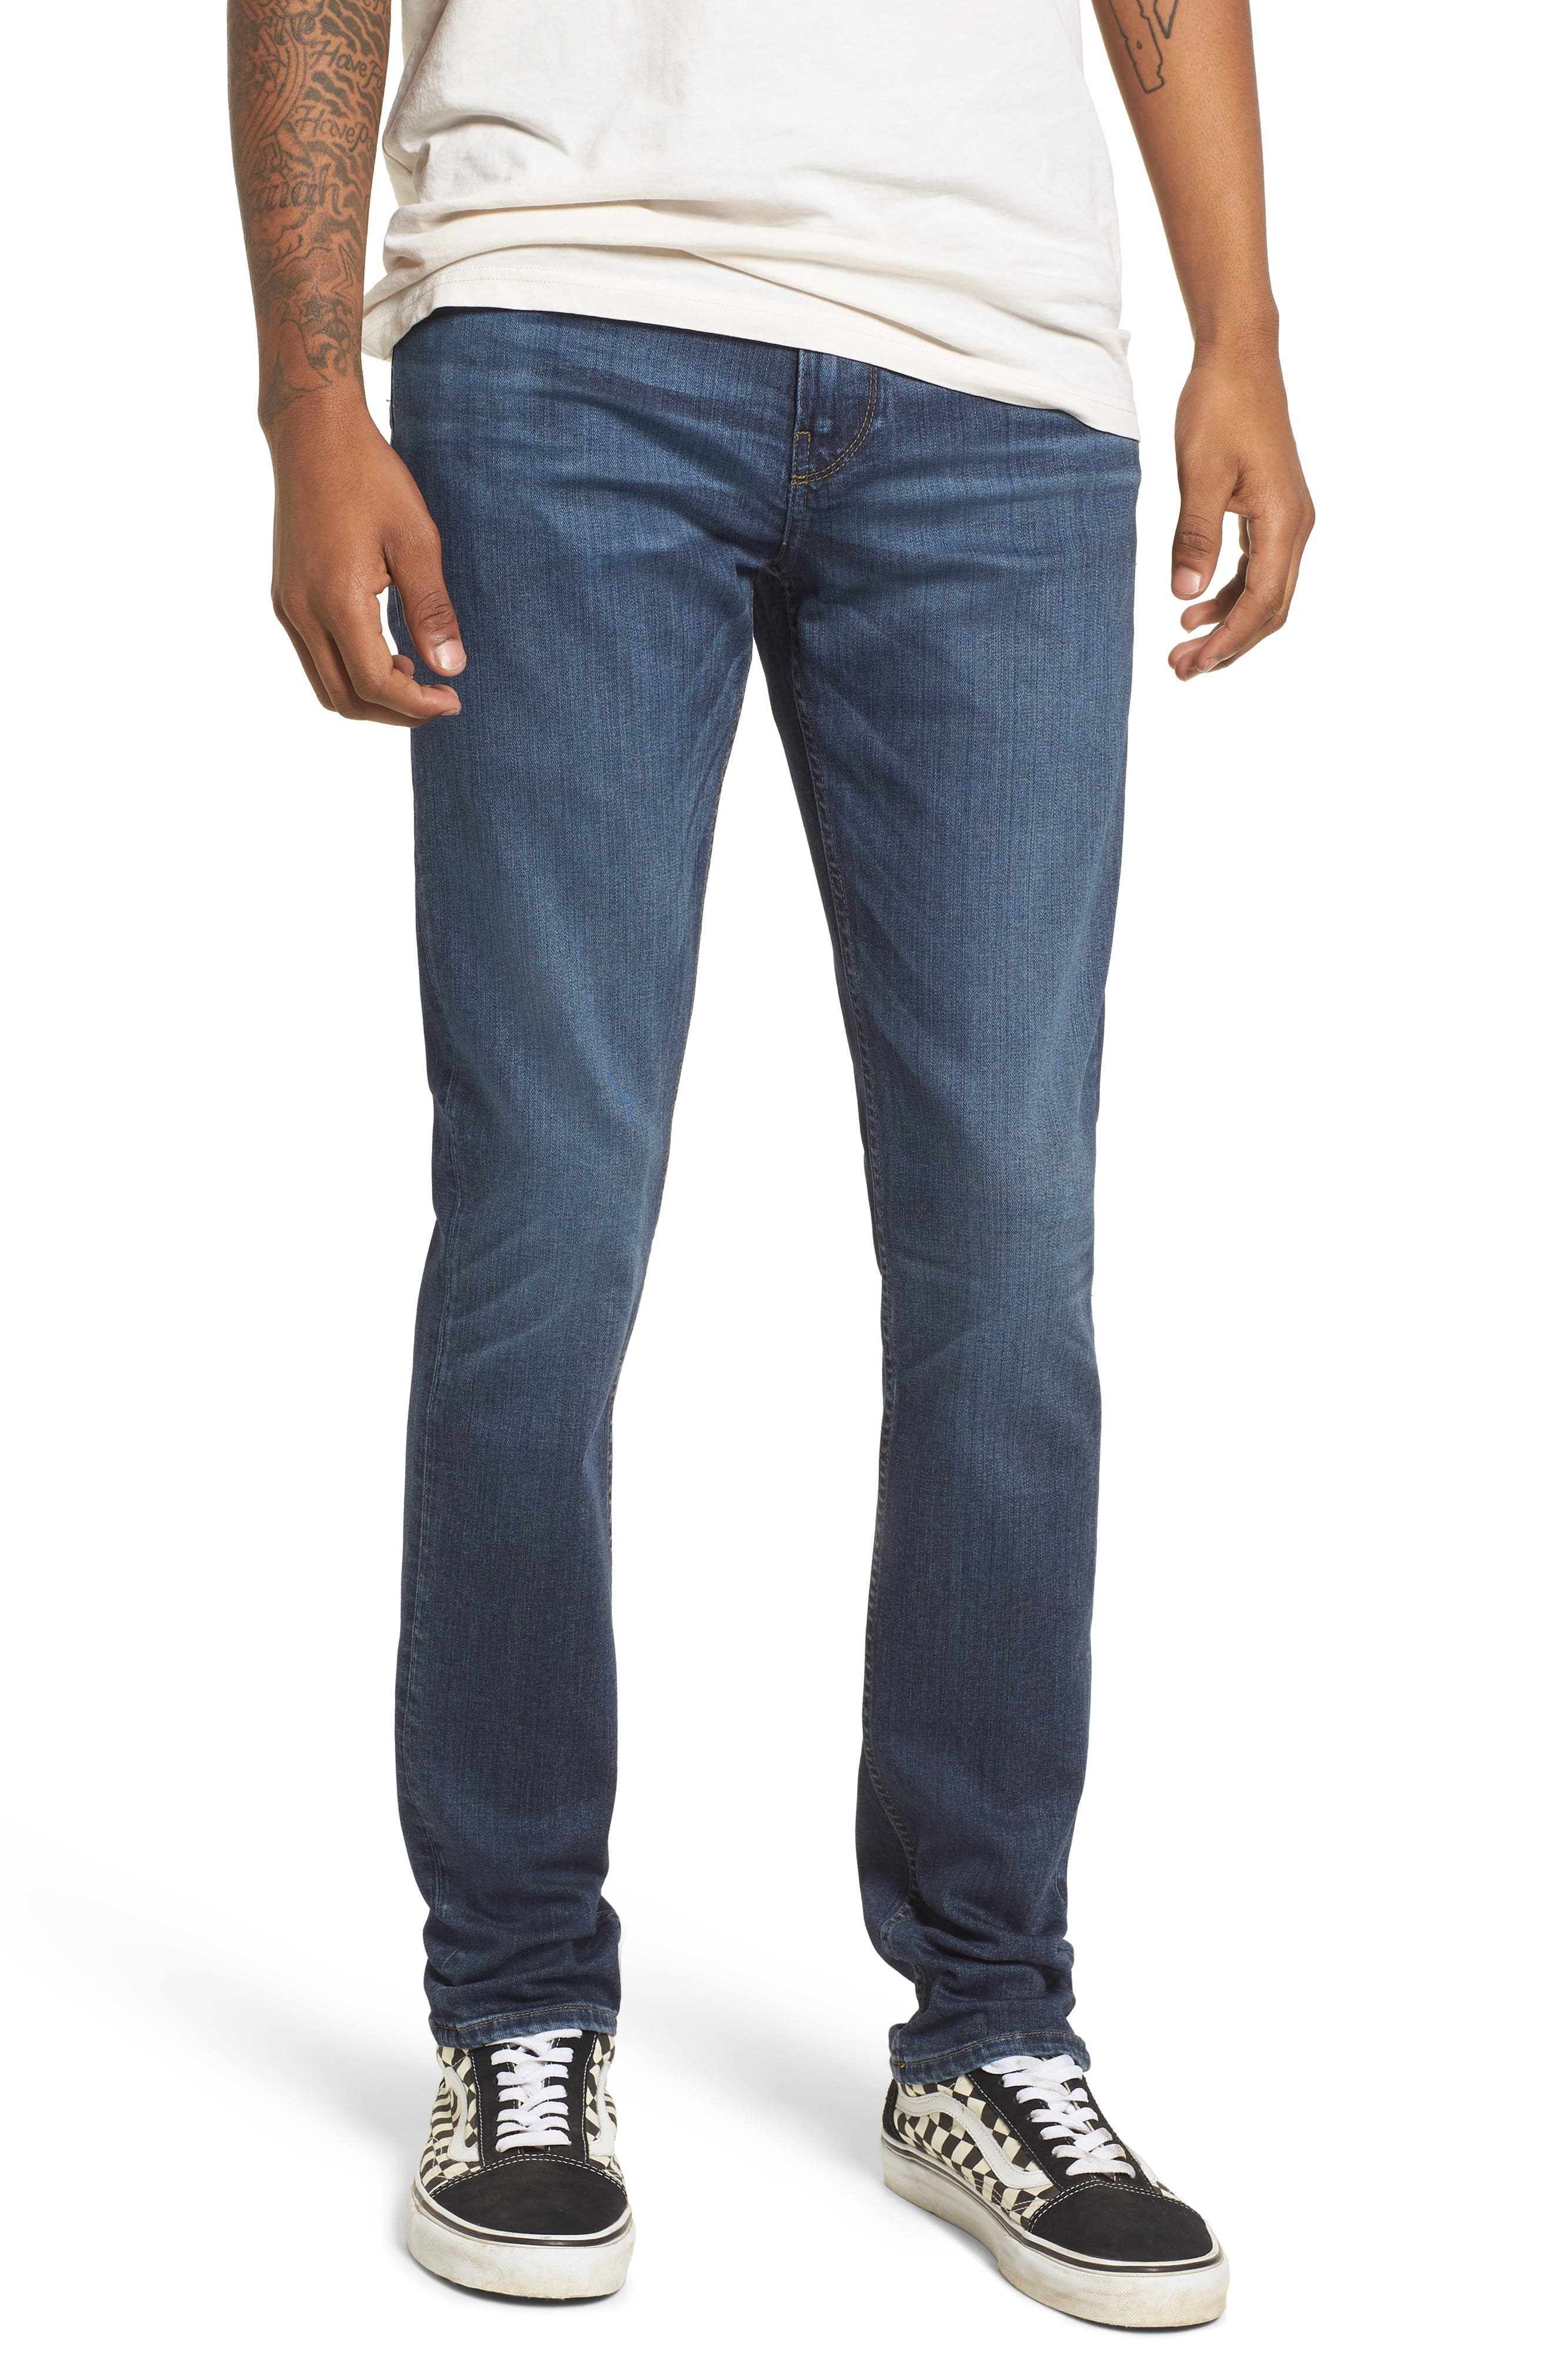 Transcend - Croft Skinny Fit Jeans,                         Main,                         color, FULTON